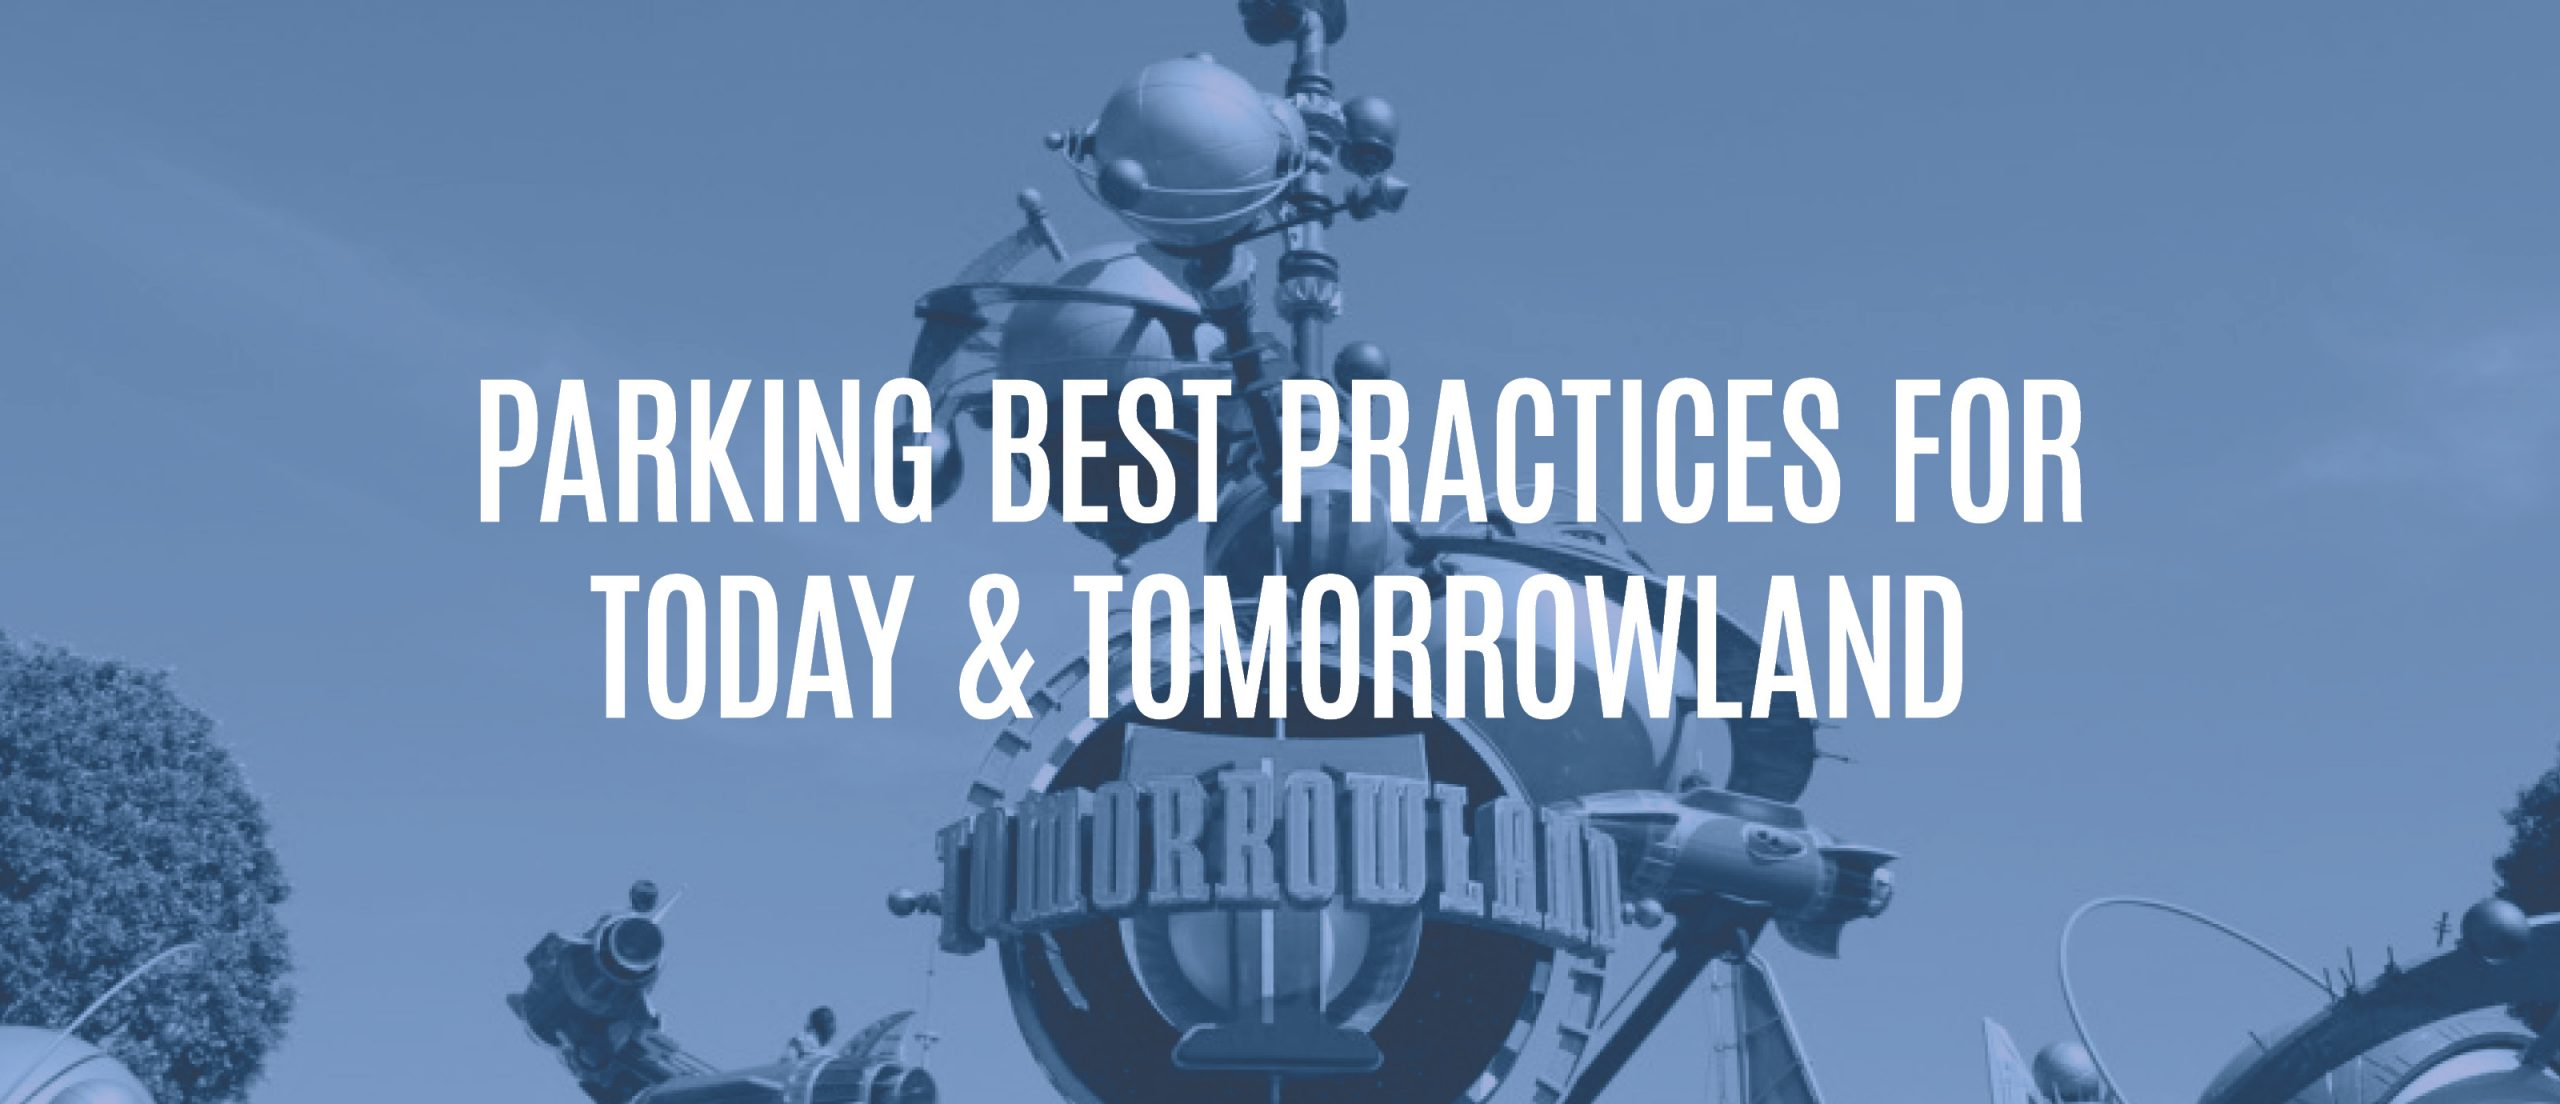 Blog Title - Parking best practices for today & tomorrowland